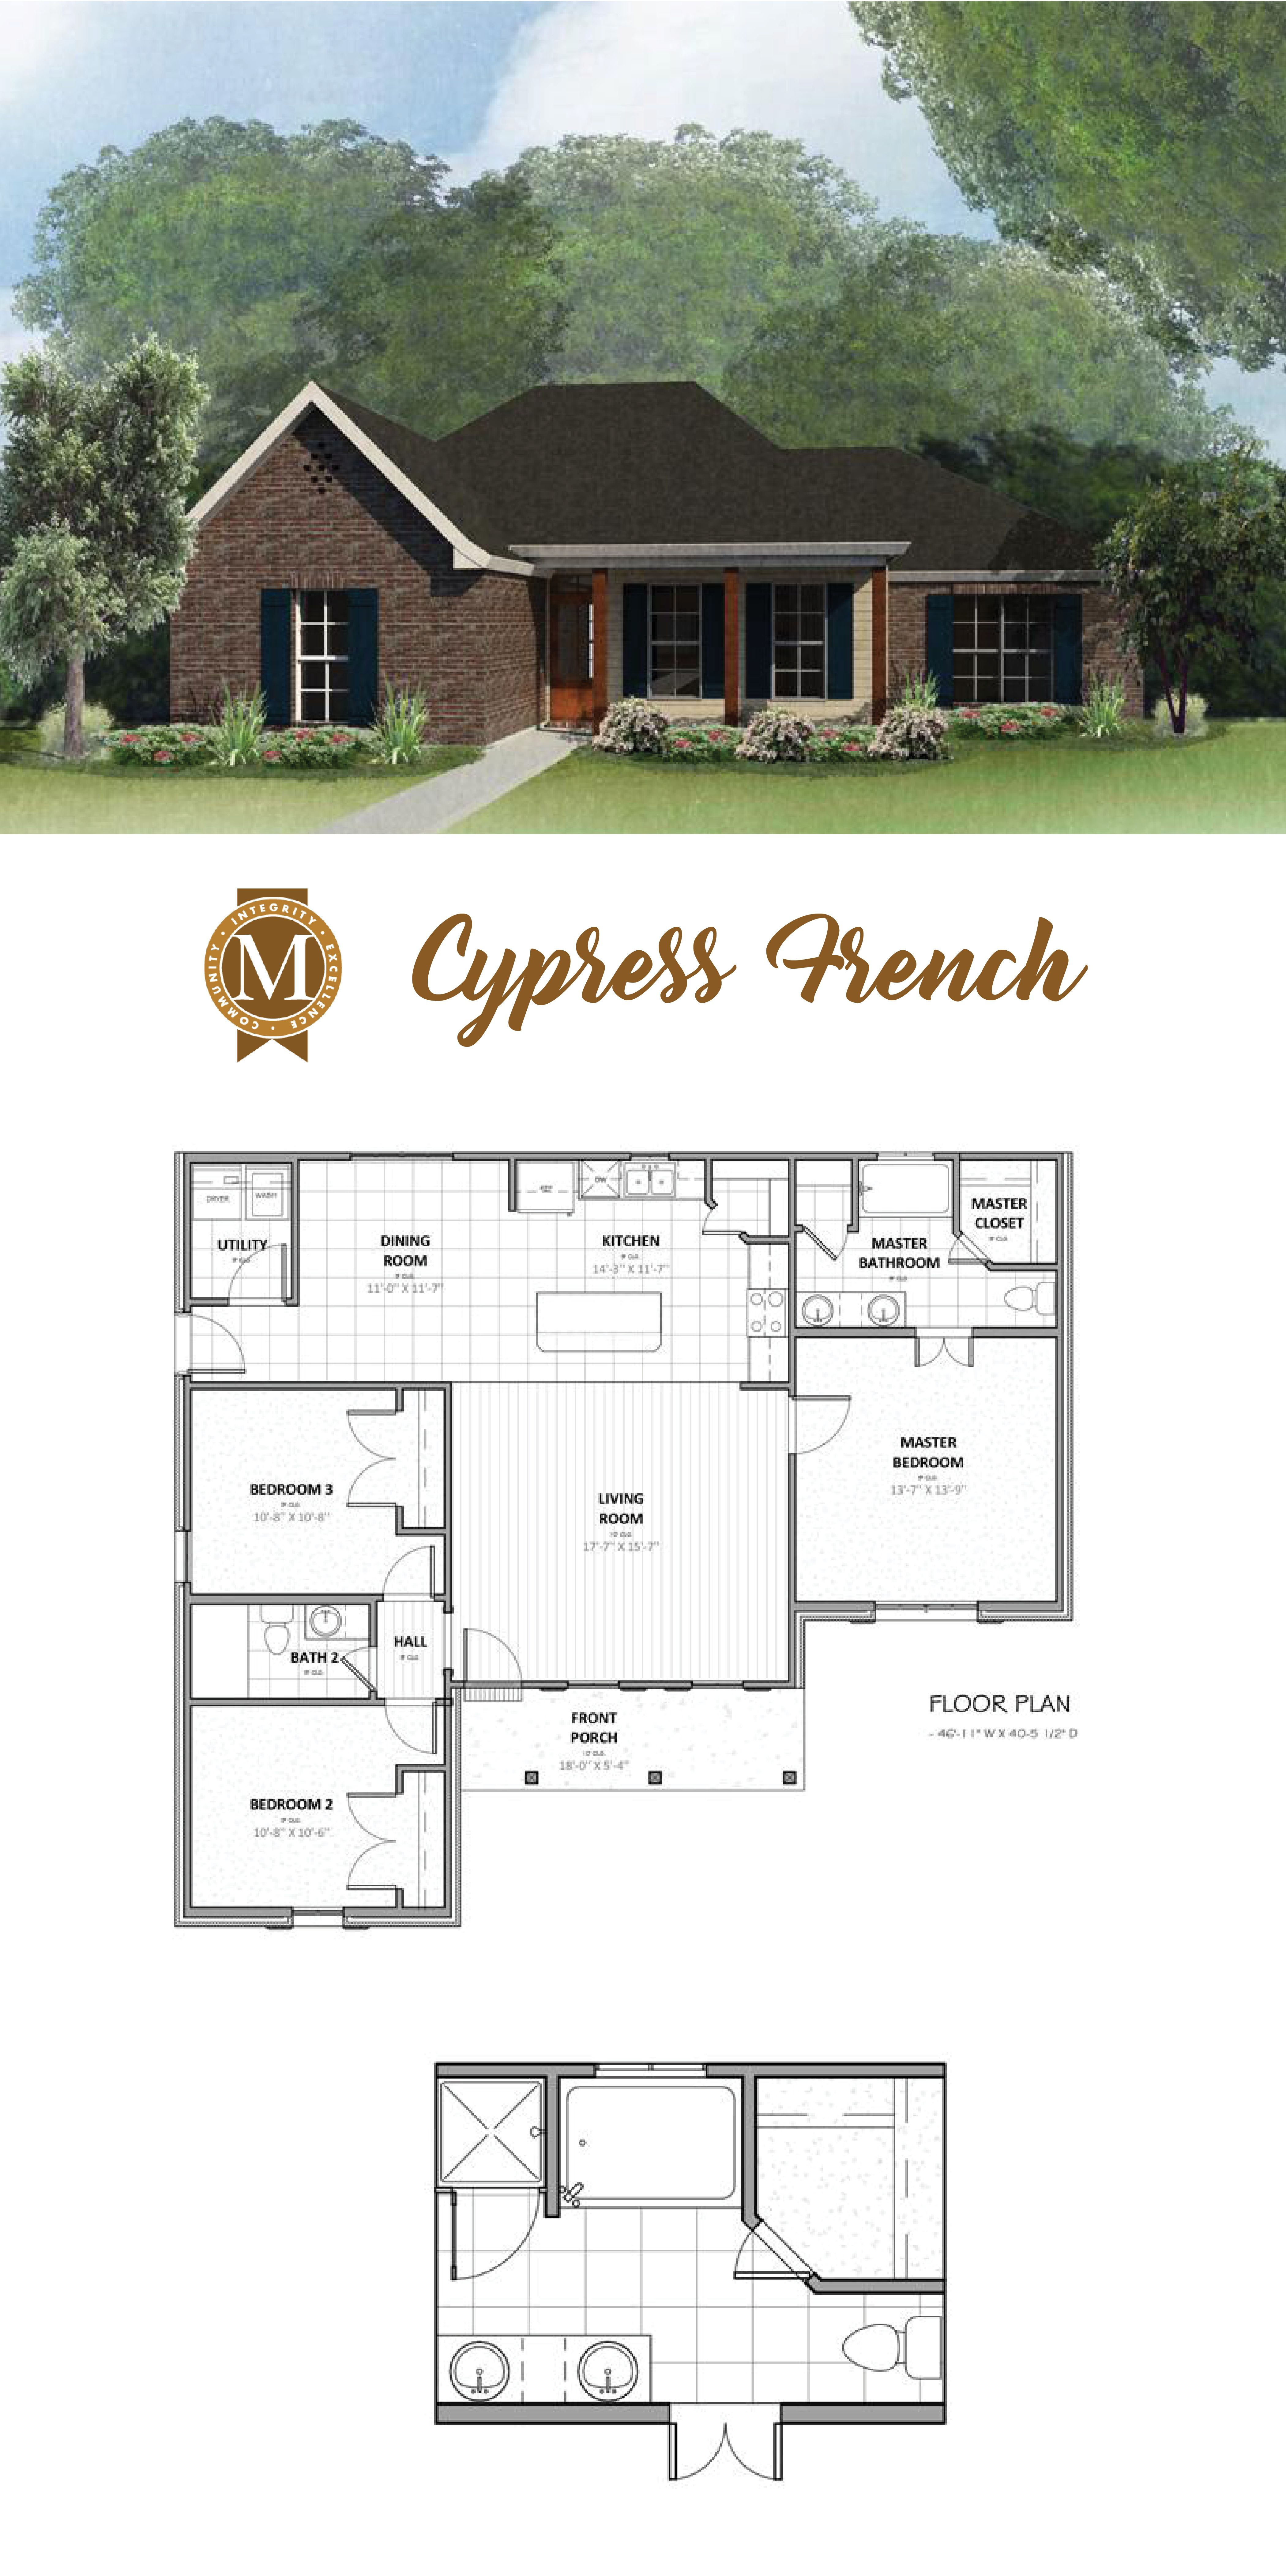 Living Sq Ft 1 450 Bedrooms 3 Baths 2 Lafayette Lake Charles Baton Rouge Louisiana House Plans French Cottage Ranch House Plans